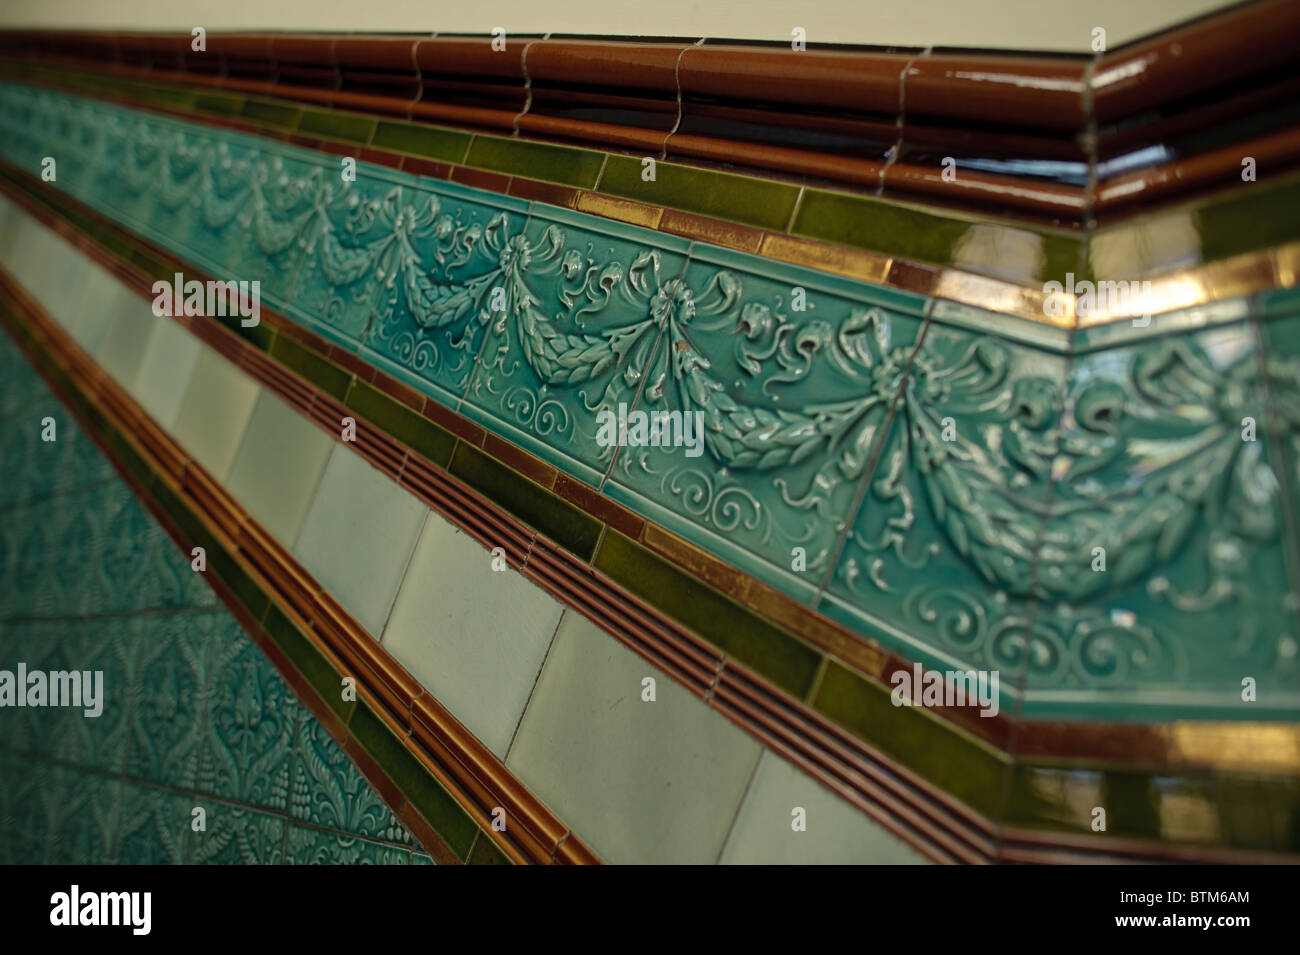 Ornate Glazed Victorian Wall Tiles Inside The Pierhead